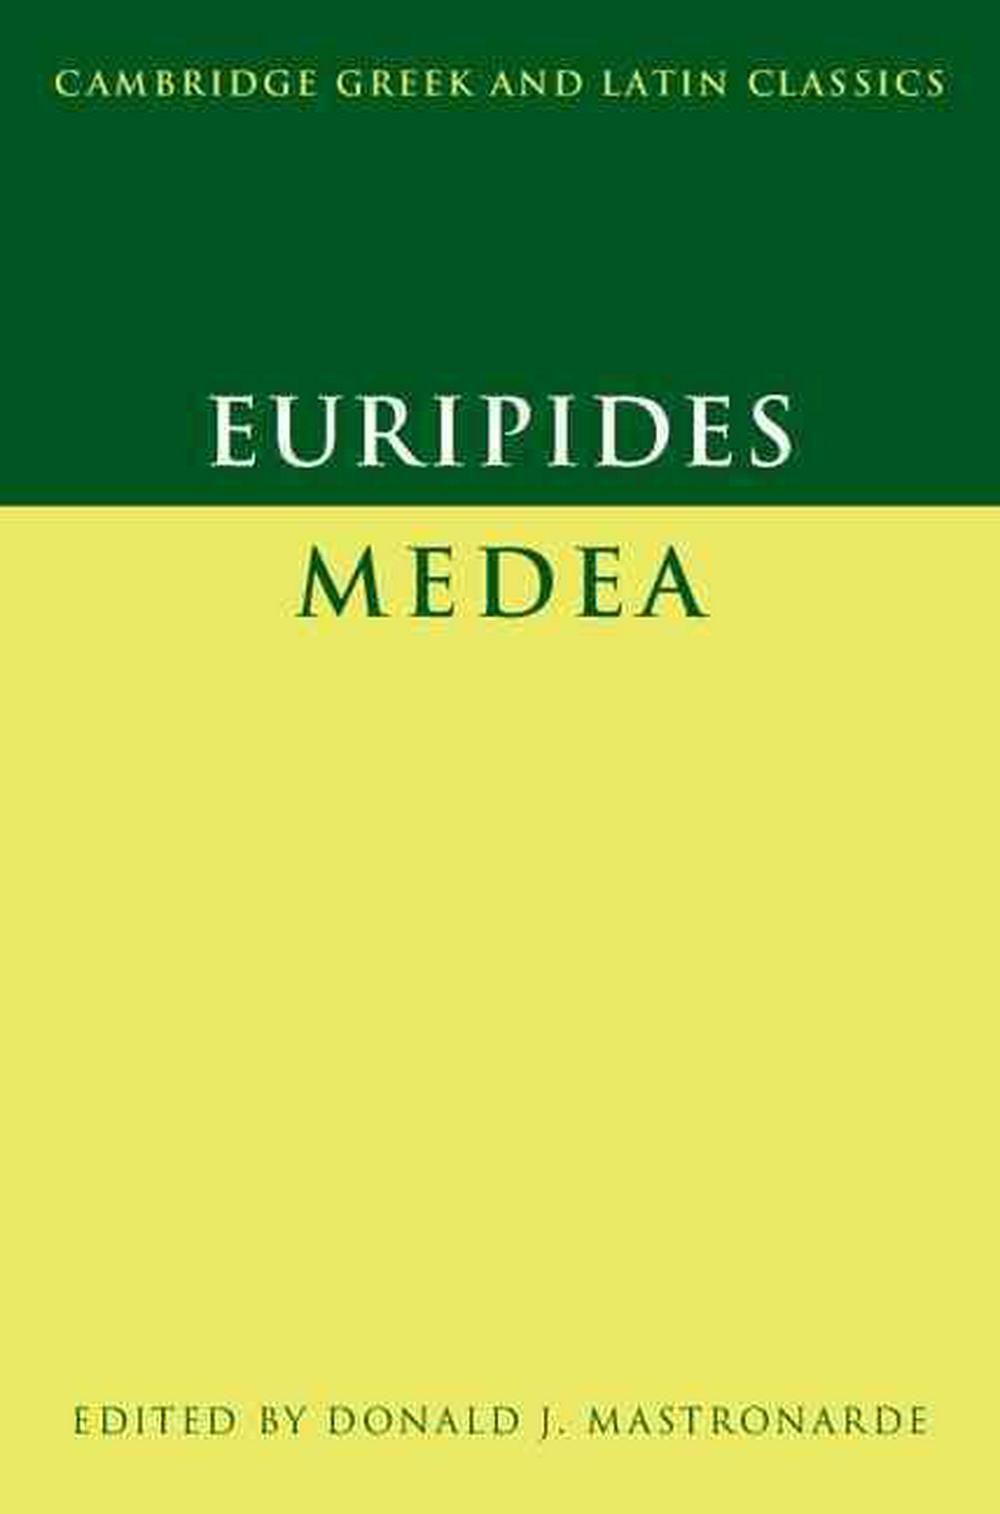 trustworthyness in homers odyssey and medea by euripides Euripides medea,' was the first in a series of plays in which vivid, powerful women appeared on the euripidean stage however, euripides made the characteristics embodied by medea in this play different, and made them hold a certain power and influence over the male characters.